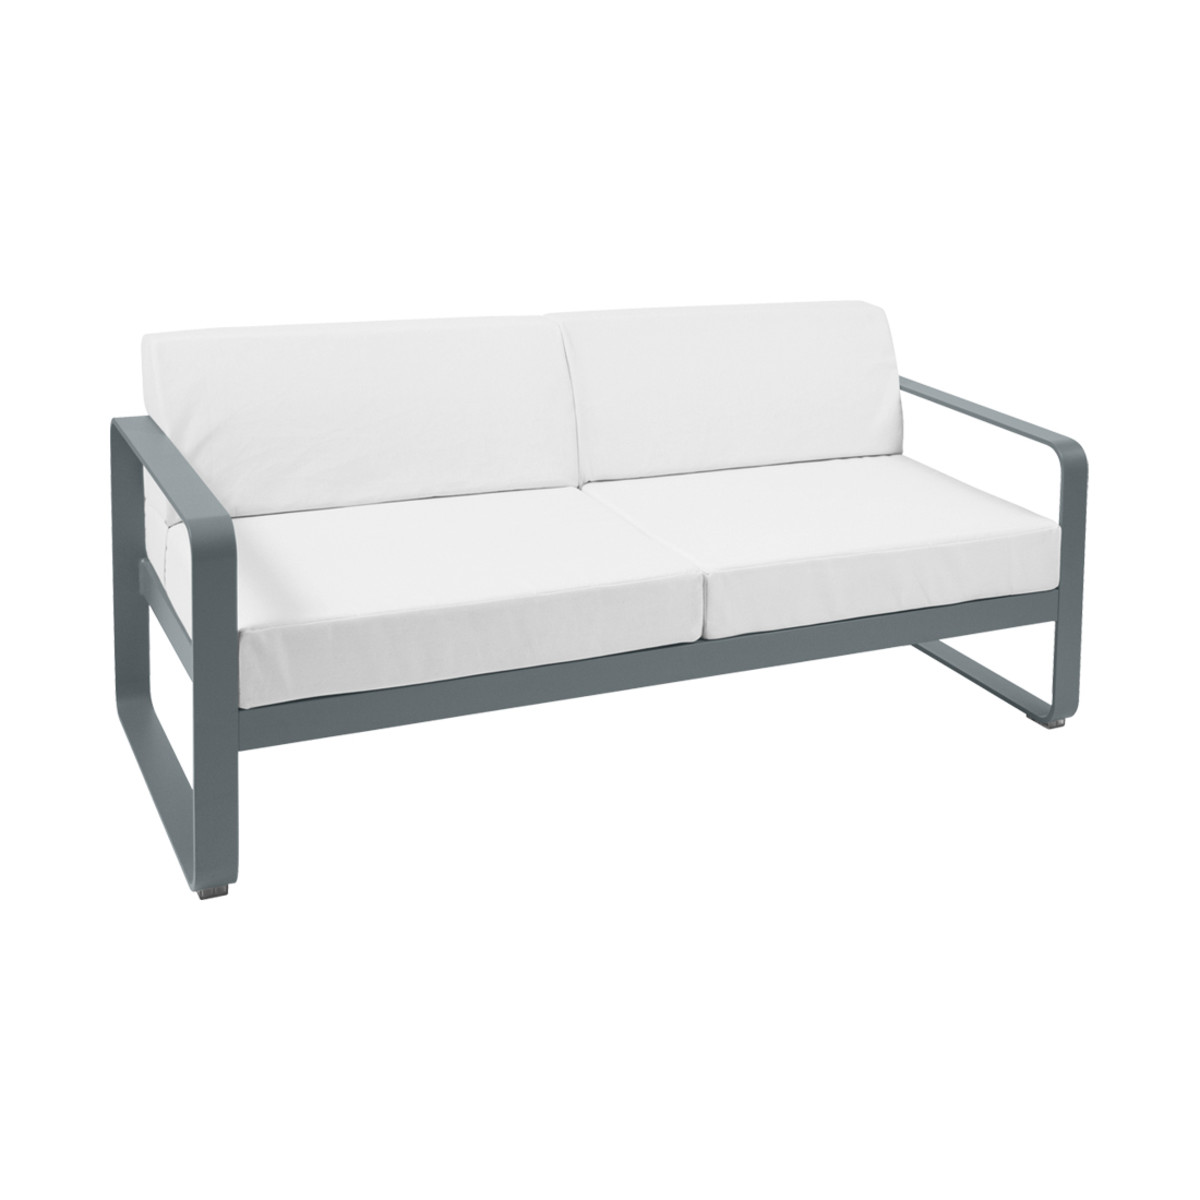 BELLEVIE / SOFA (OFF-WHITE CUSHION)